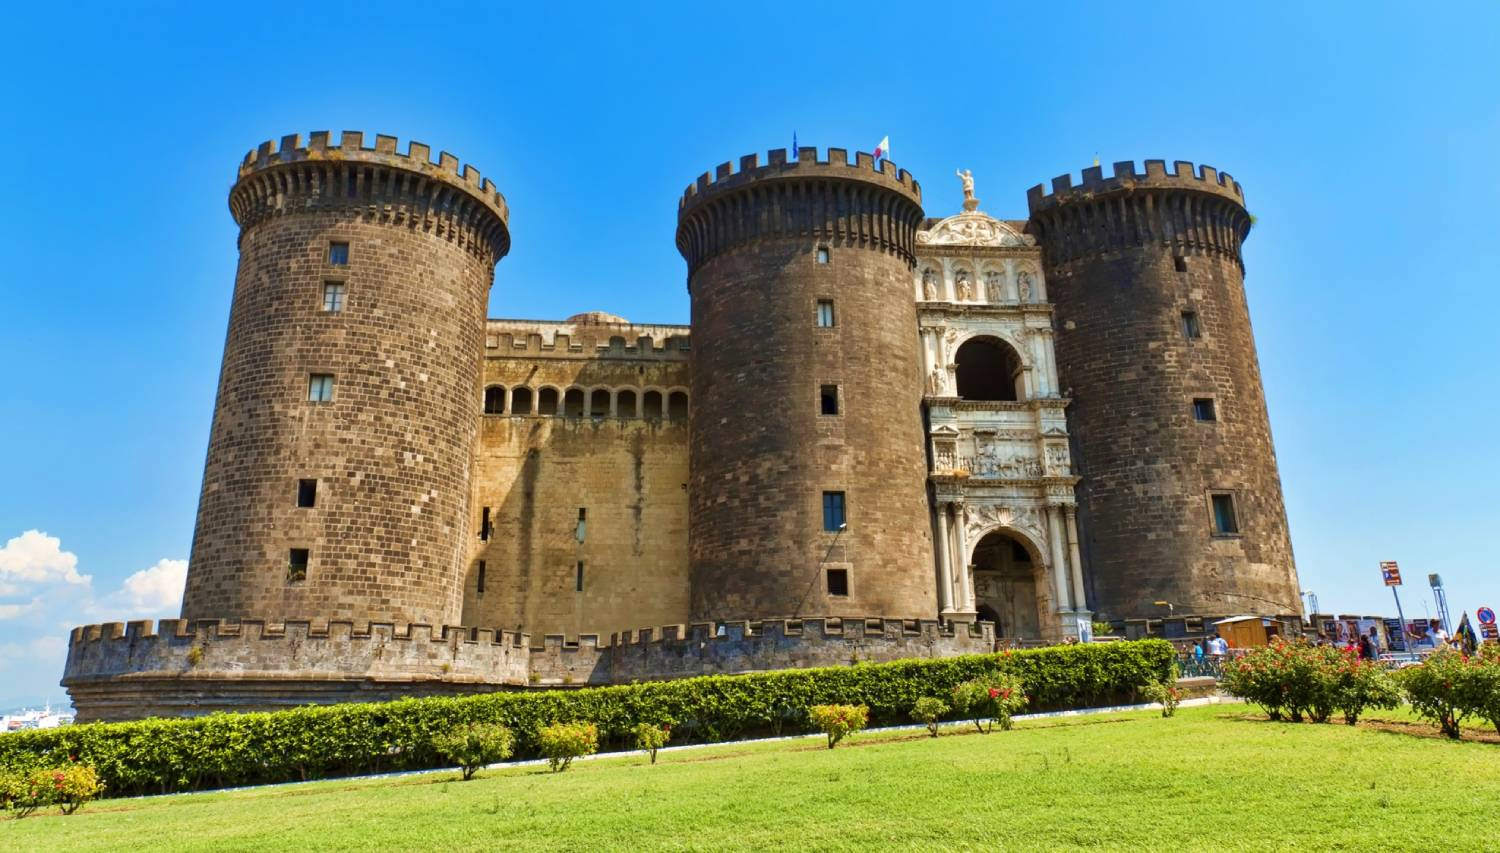 Castel Nuovo (Maschio Angioino) - Things To Do In Naples